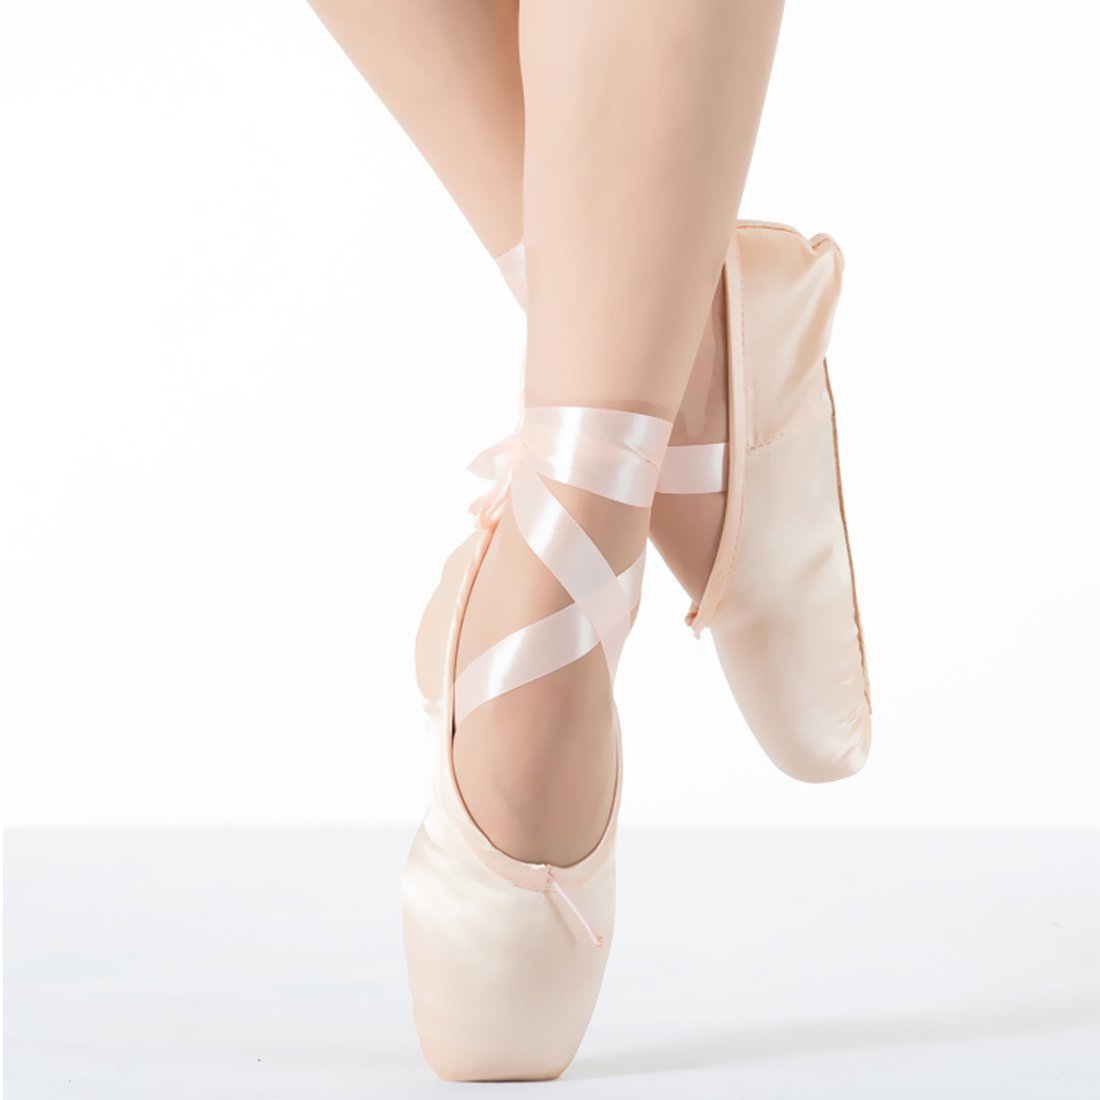 KUKOME New Pink Ballet Dance Toe Shoes Professional Ladies Satin Pointe Shoes (US7,Inside Length 240mm=9.45inch)